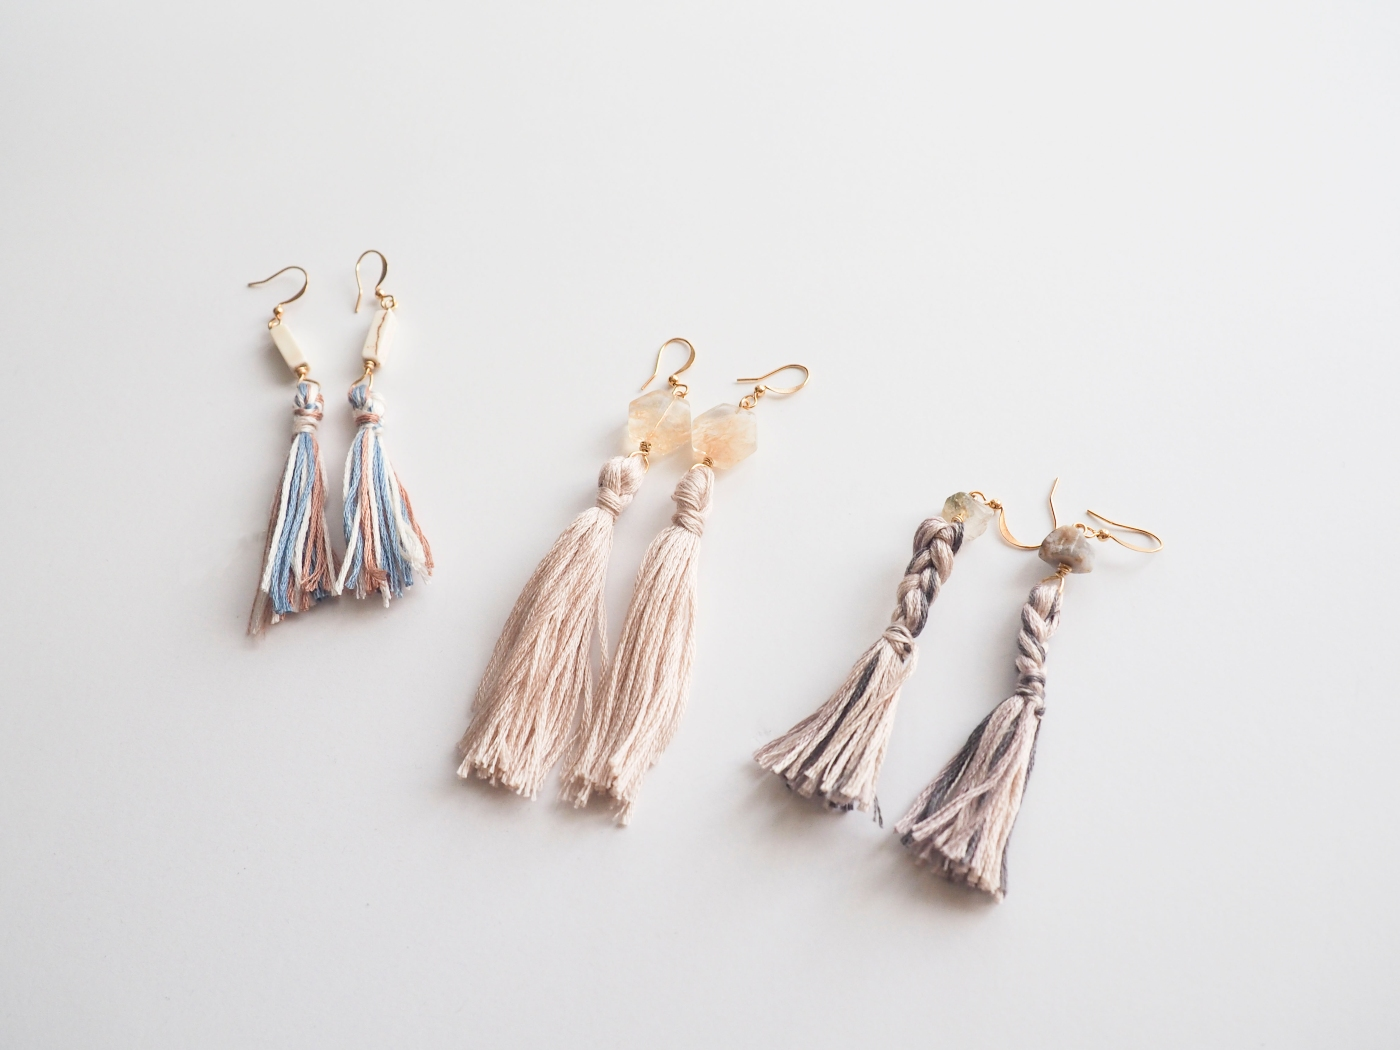 SV_tassel earrings_group-3.jpg